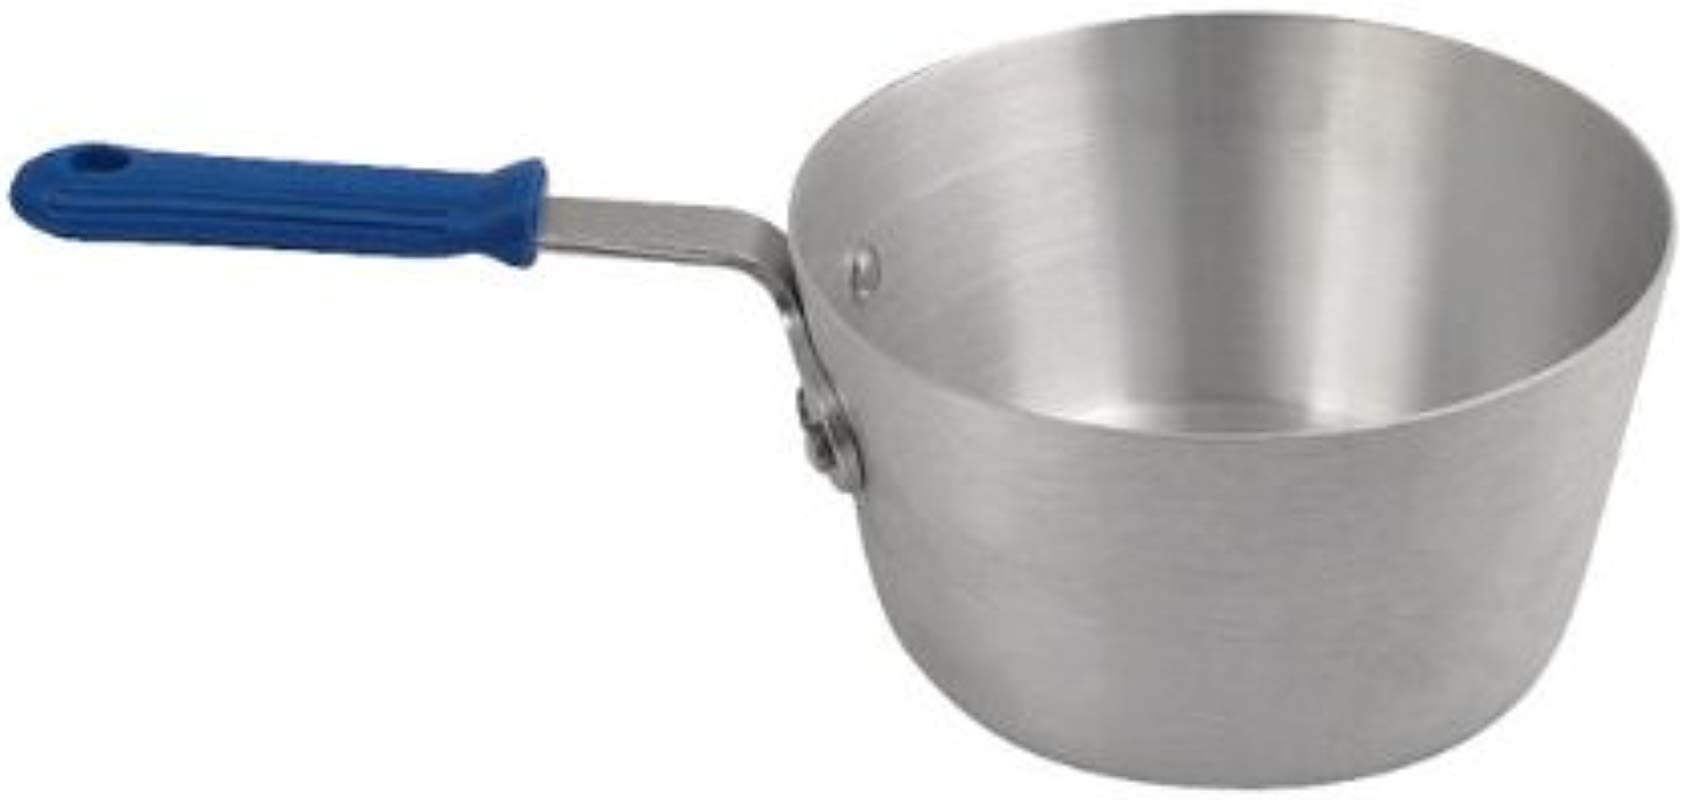 Vollrath Company 434112 Sauce Pan 1 5 Quart